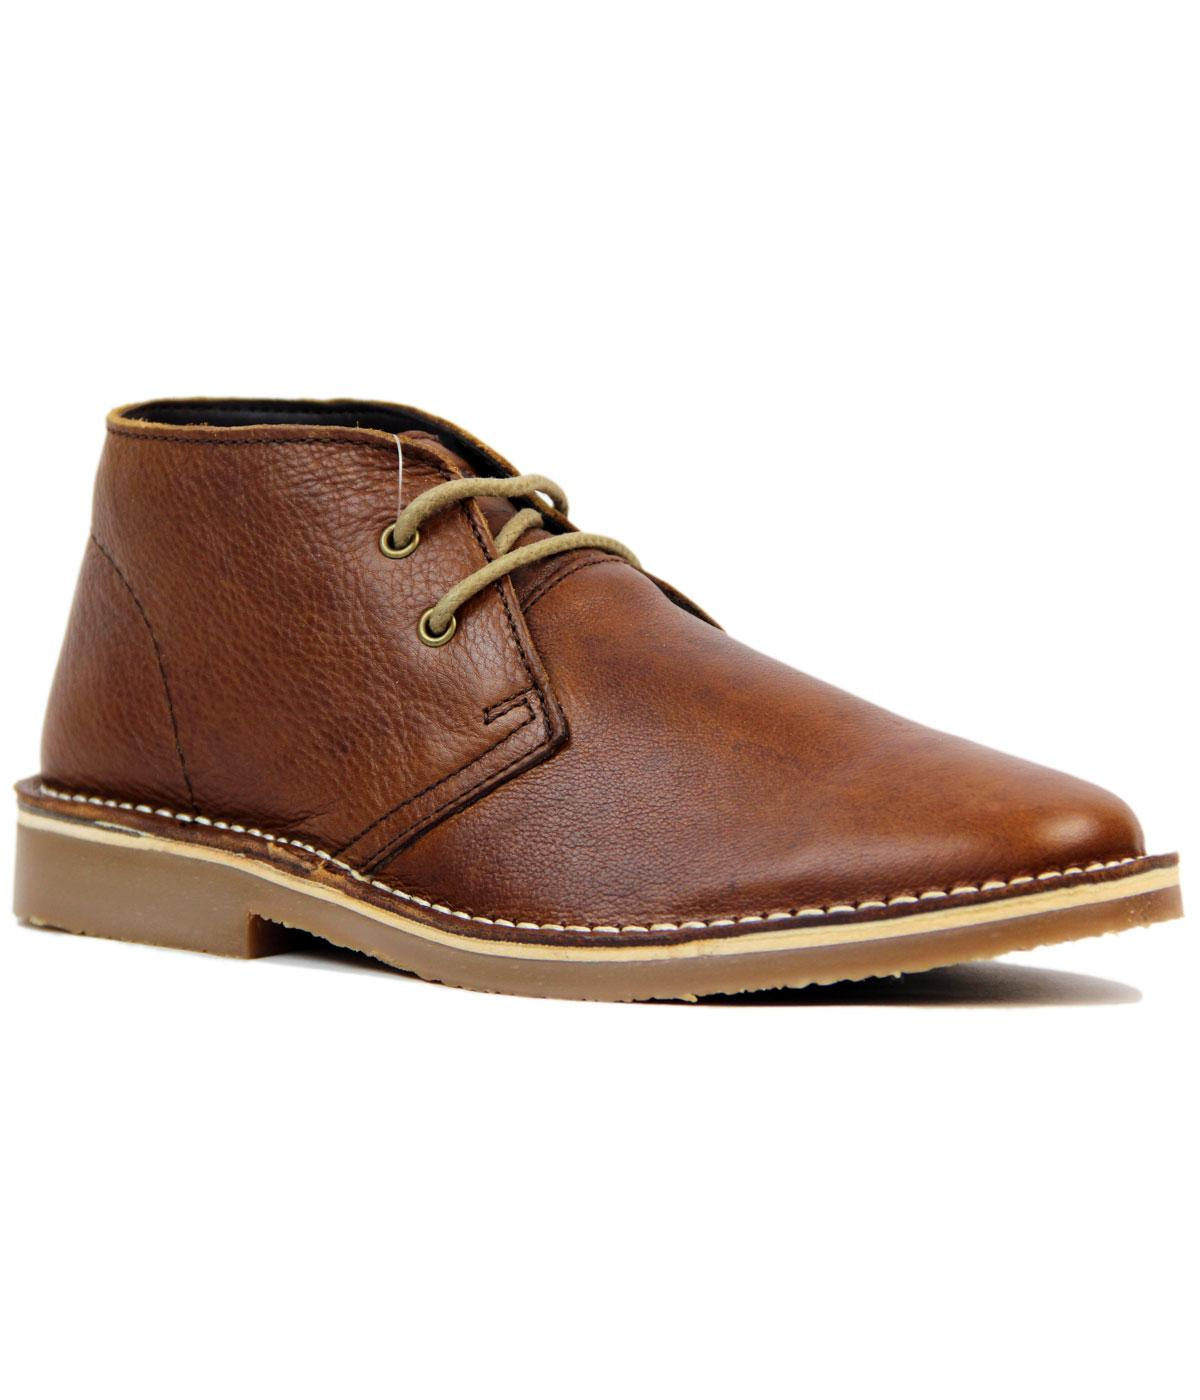 Sidebury Retro Mod Tumbled Leather Desert Boots